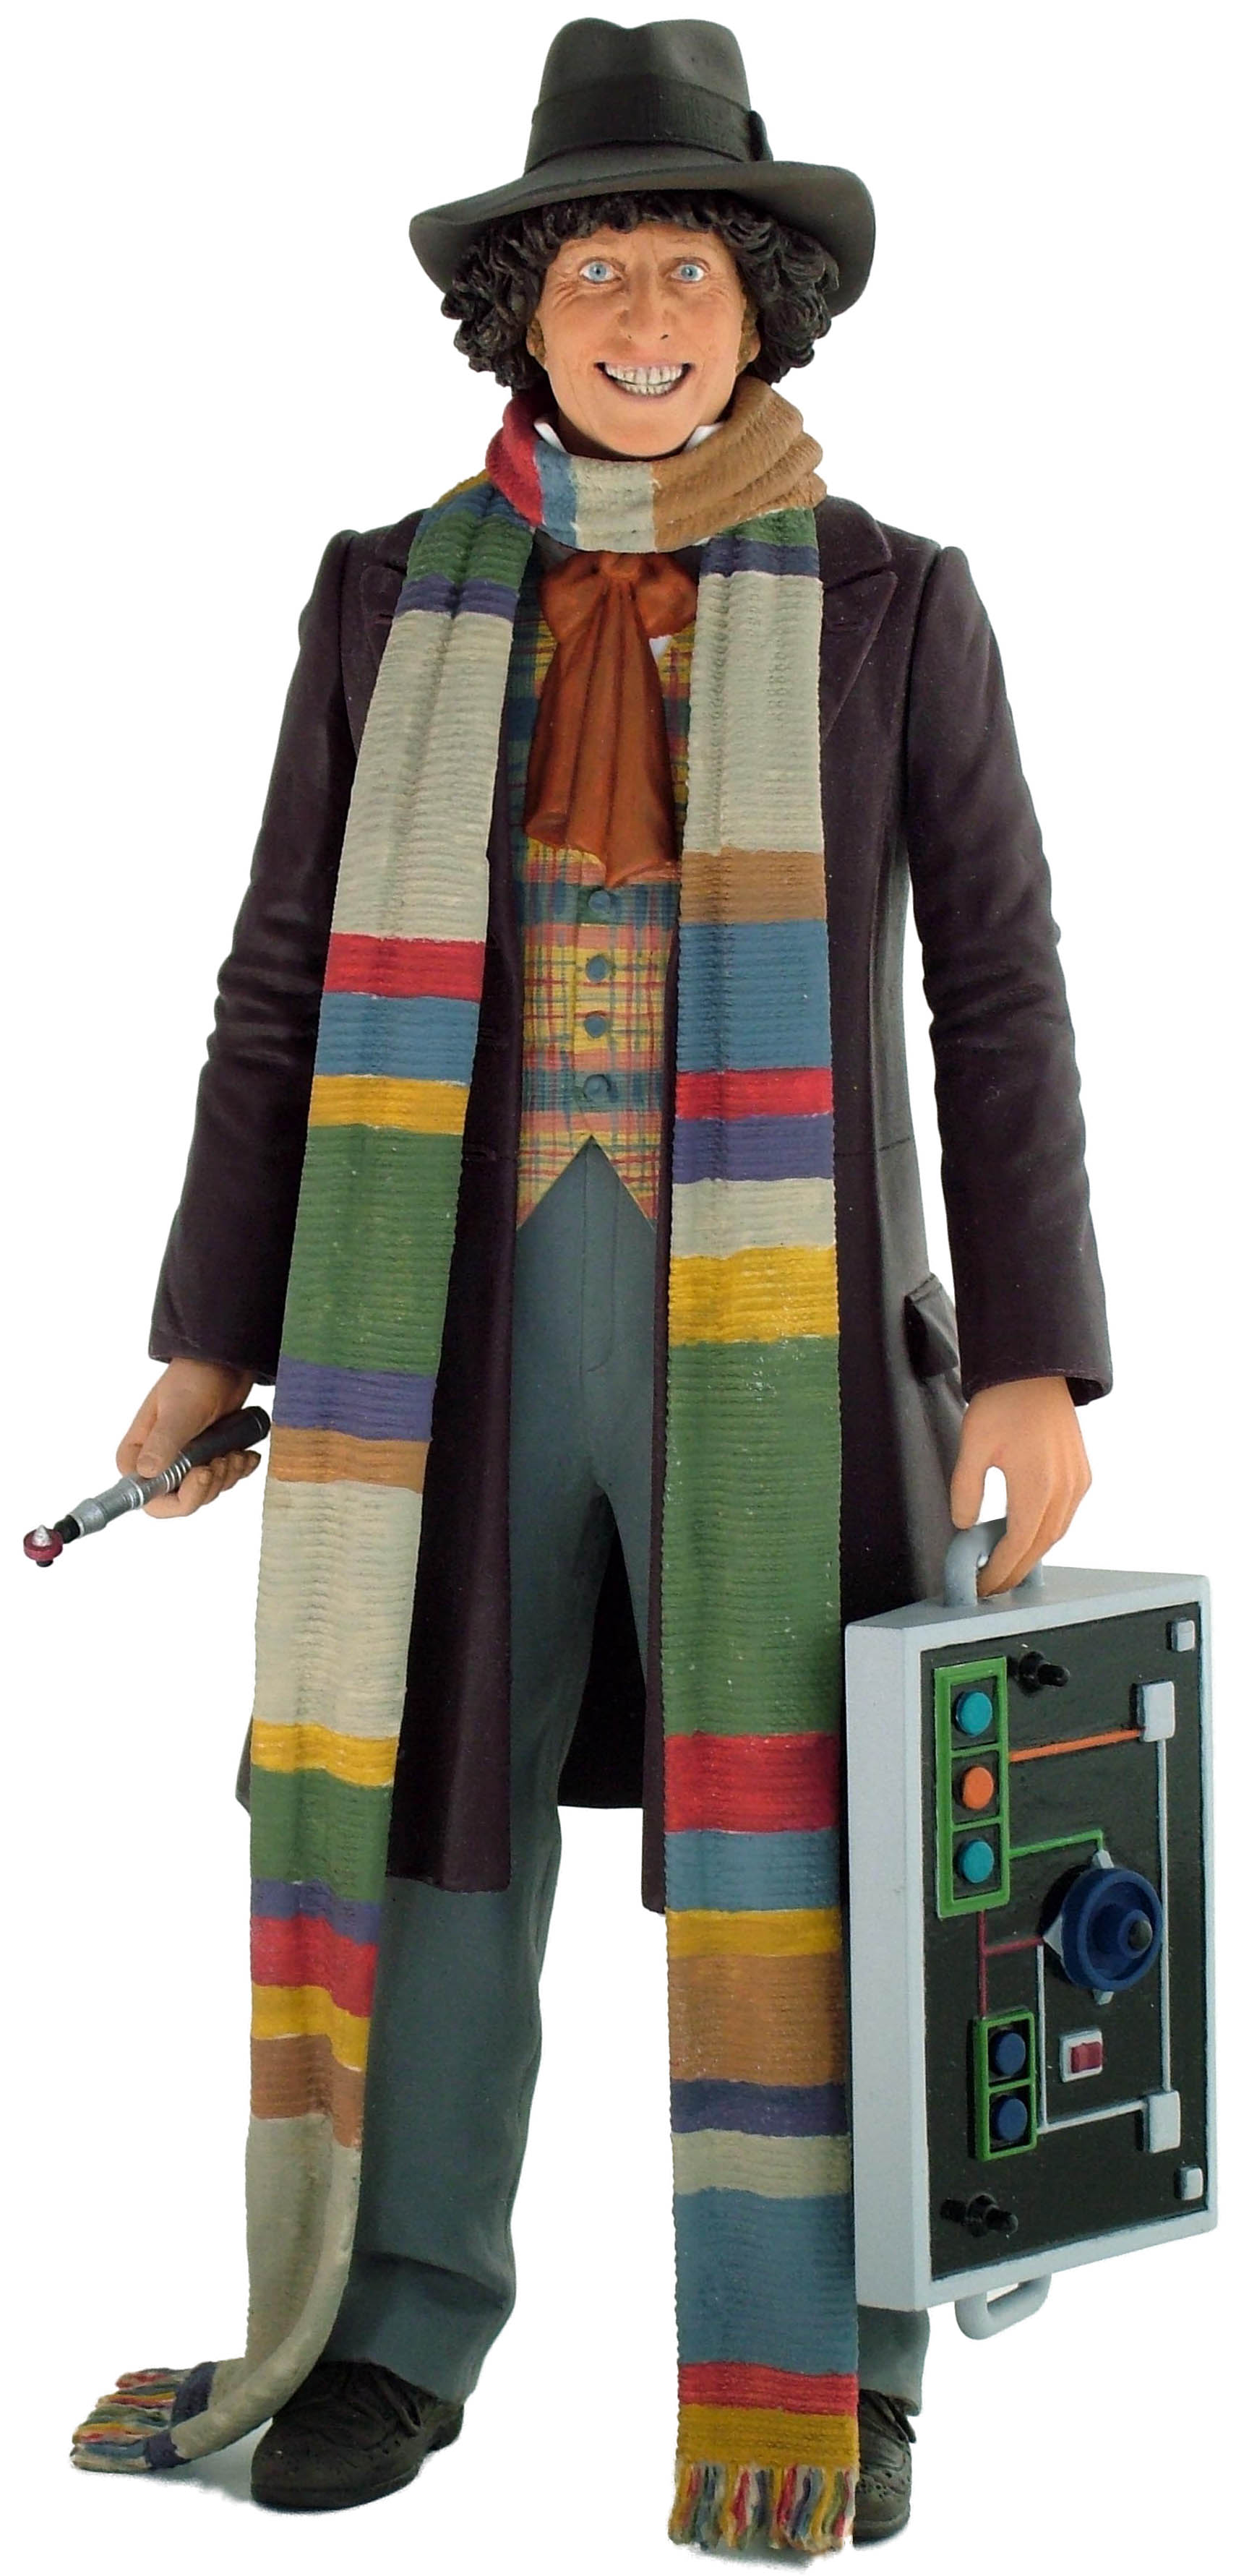 [Exclusive Action Figures: Classic Pyramids Of Mars 4th Doctor]